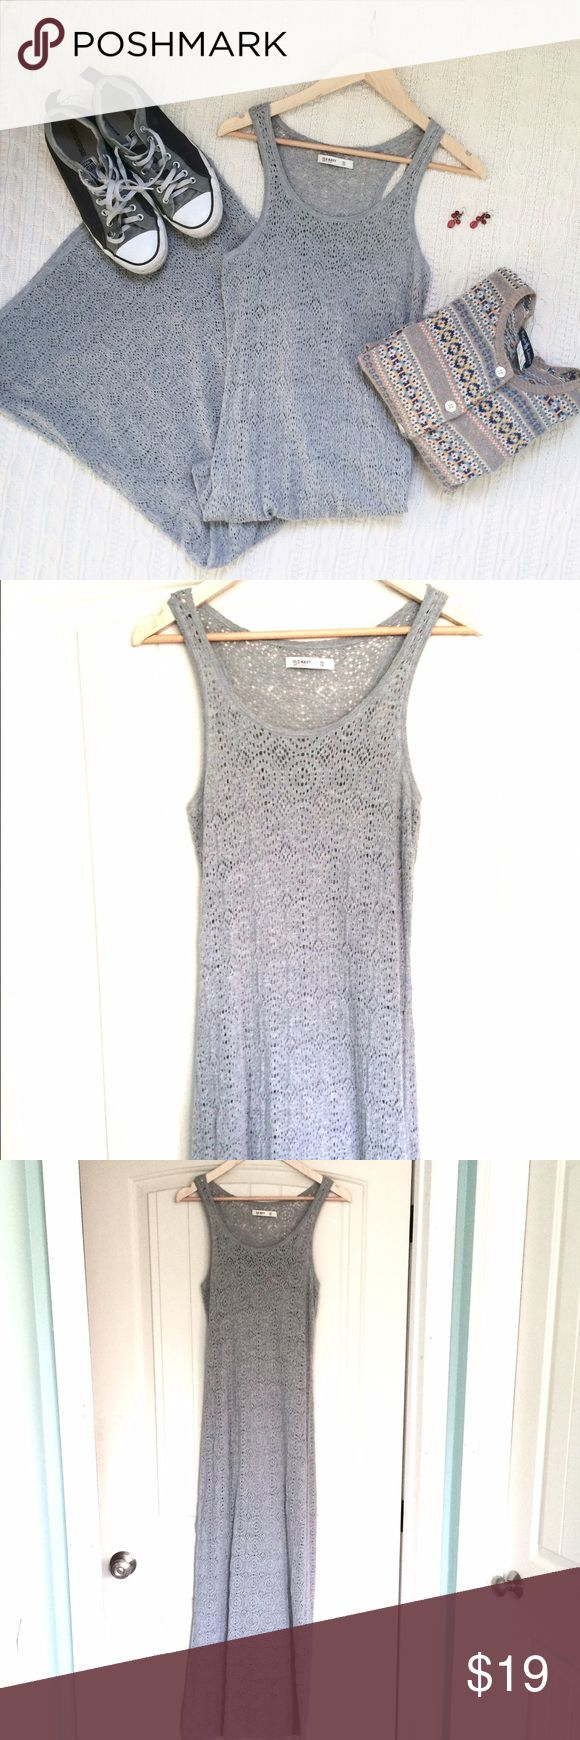 Cute Crochet Maxi Dress Gorgeous, fully lined, crocheted maxi dress! Perfect for spring and summer! Let me know if you have any questions 💋 CONSIGNING SOON Old Navy Dresses Maxi